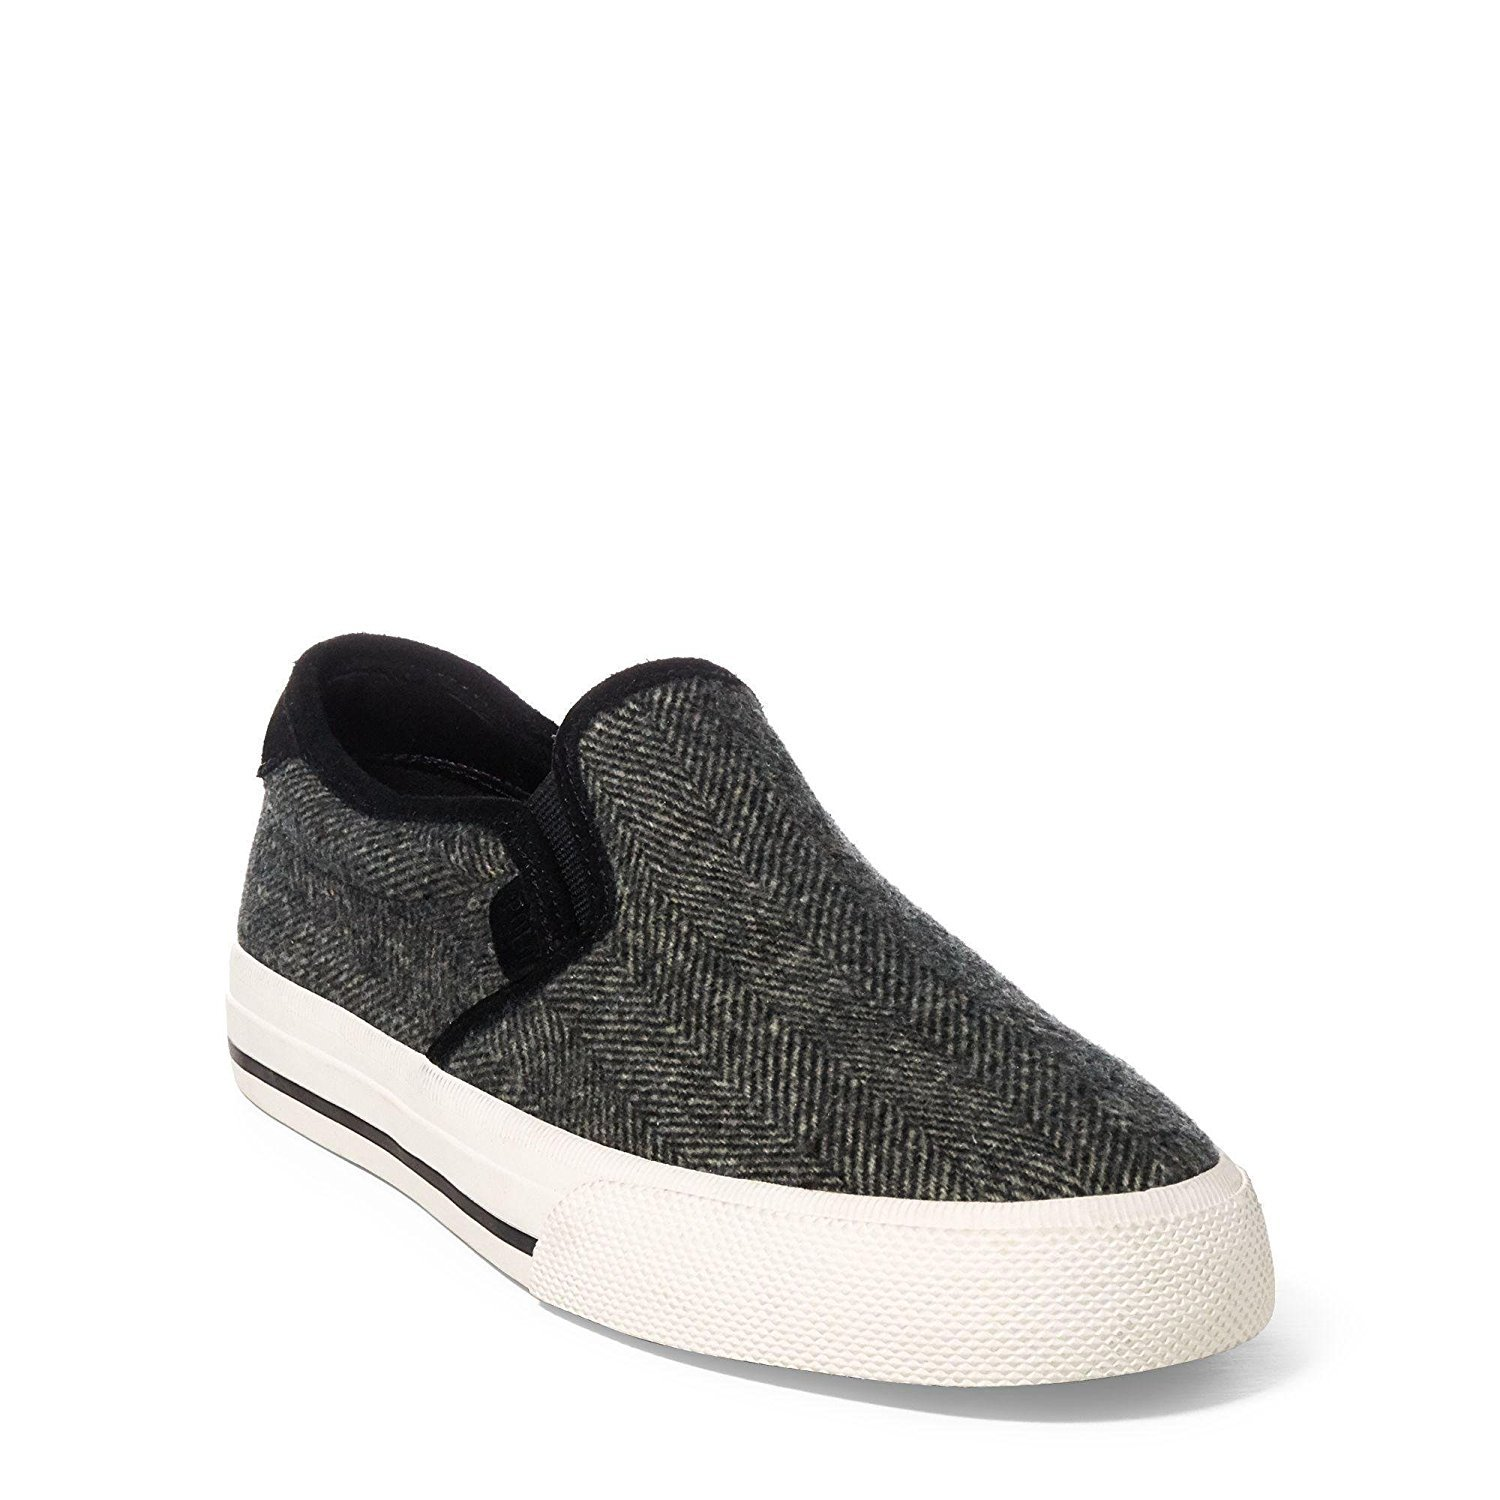 Polo Ralph Lauren Men's Vaughn Slip On II Sneaker - Herringbone, Size 9.5